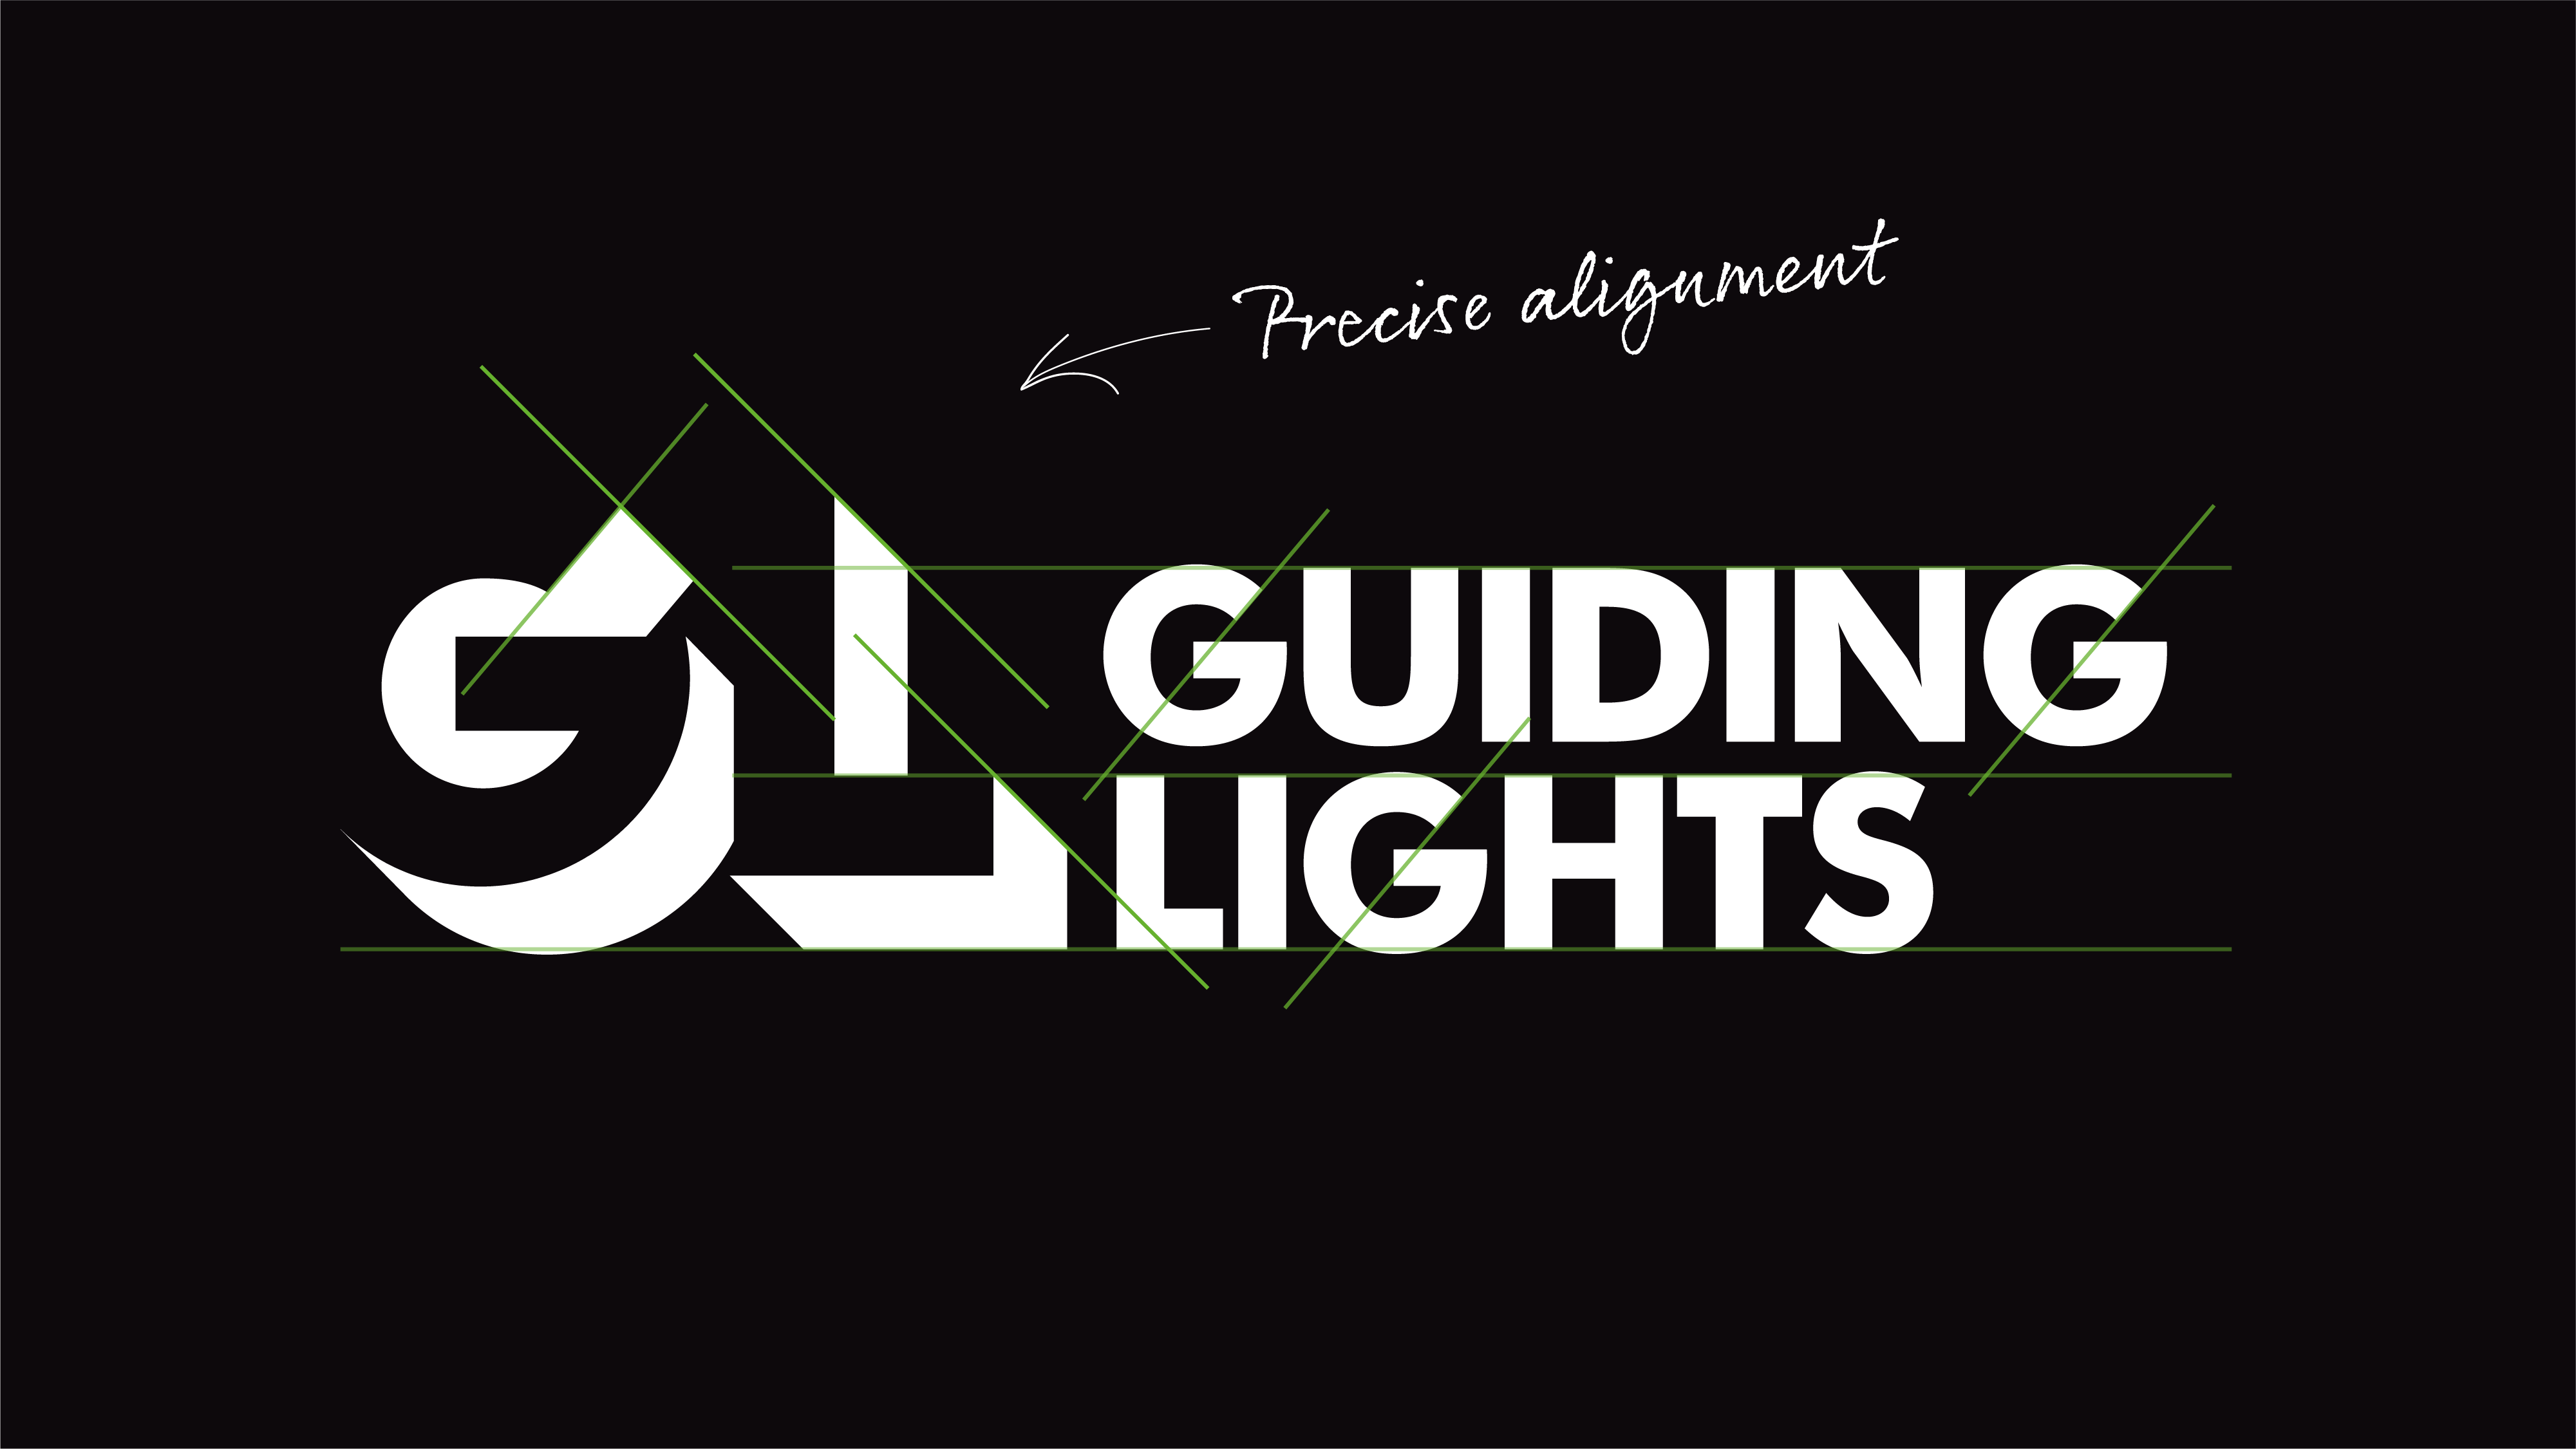 Guiding-Lights-refinement-06